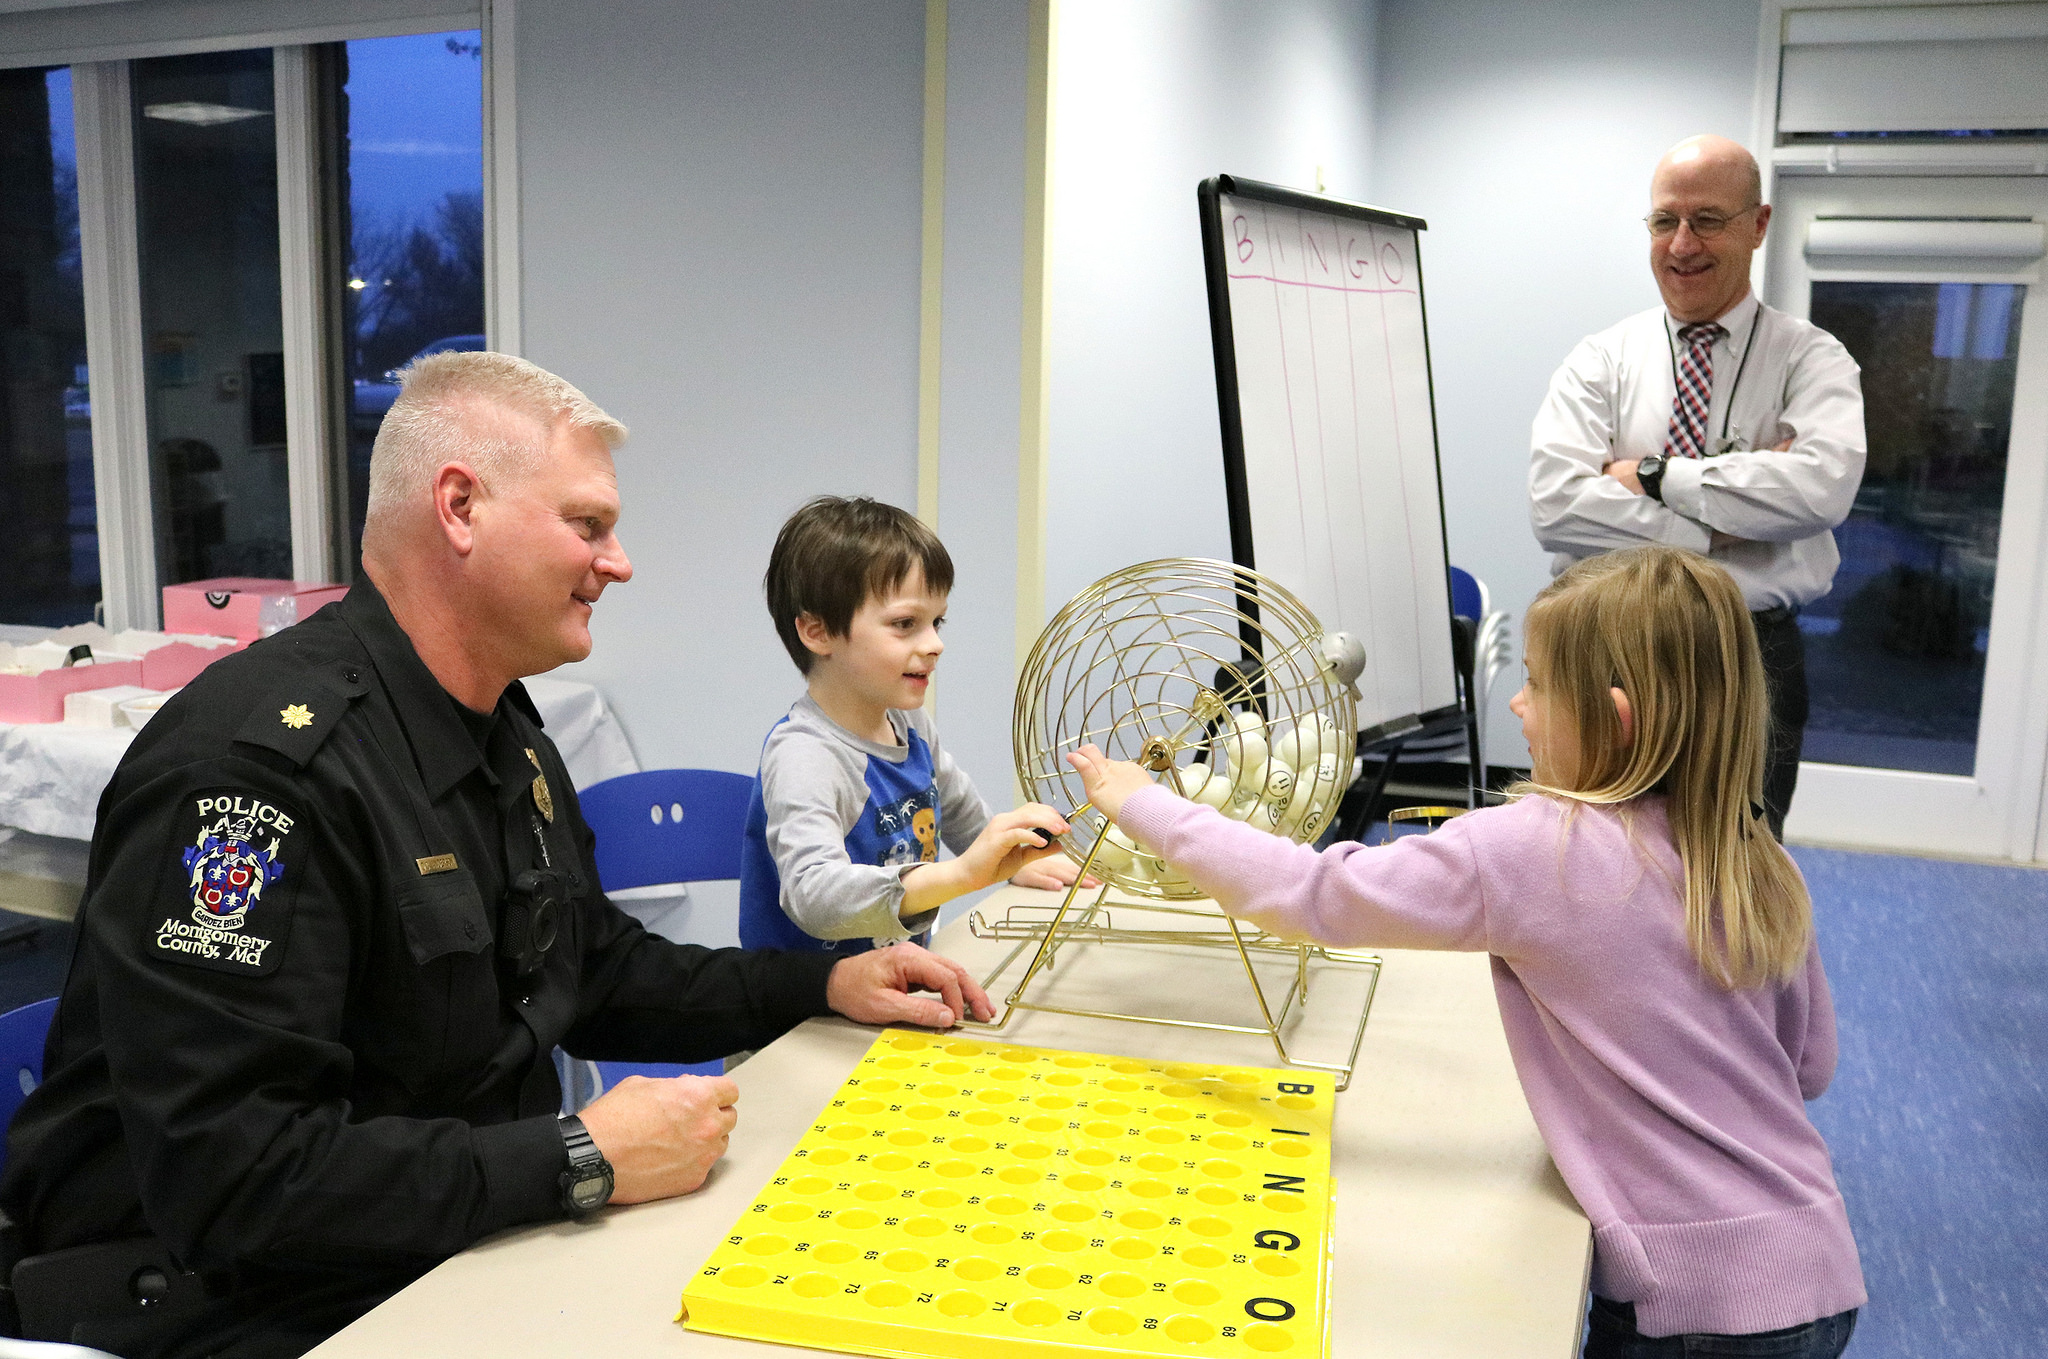 Bingo with Officer Dave at The Inn